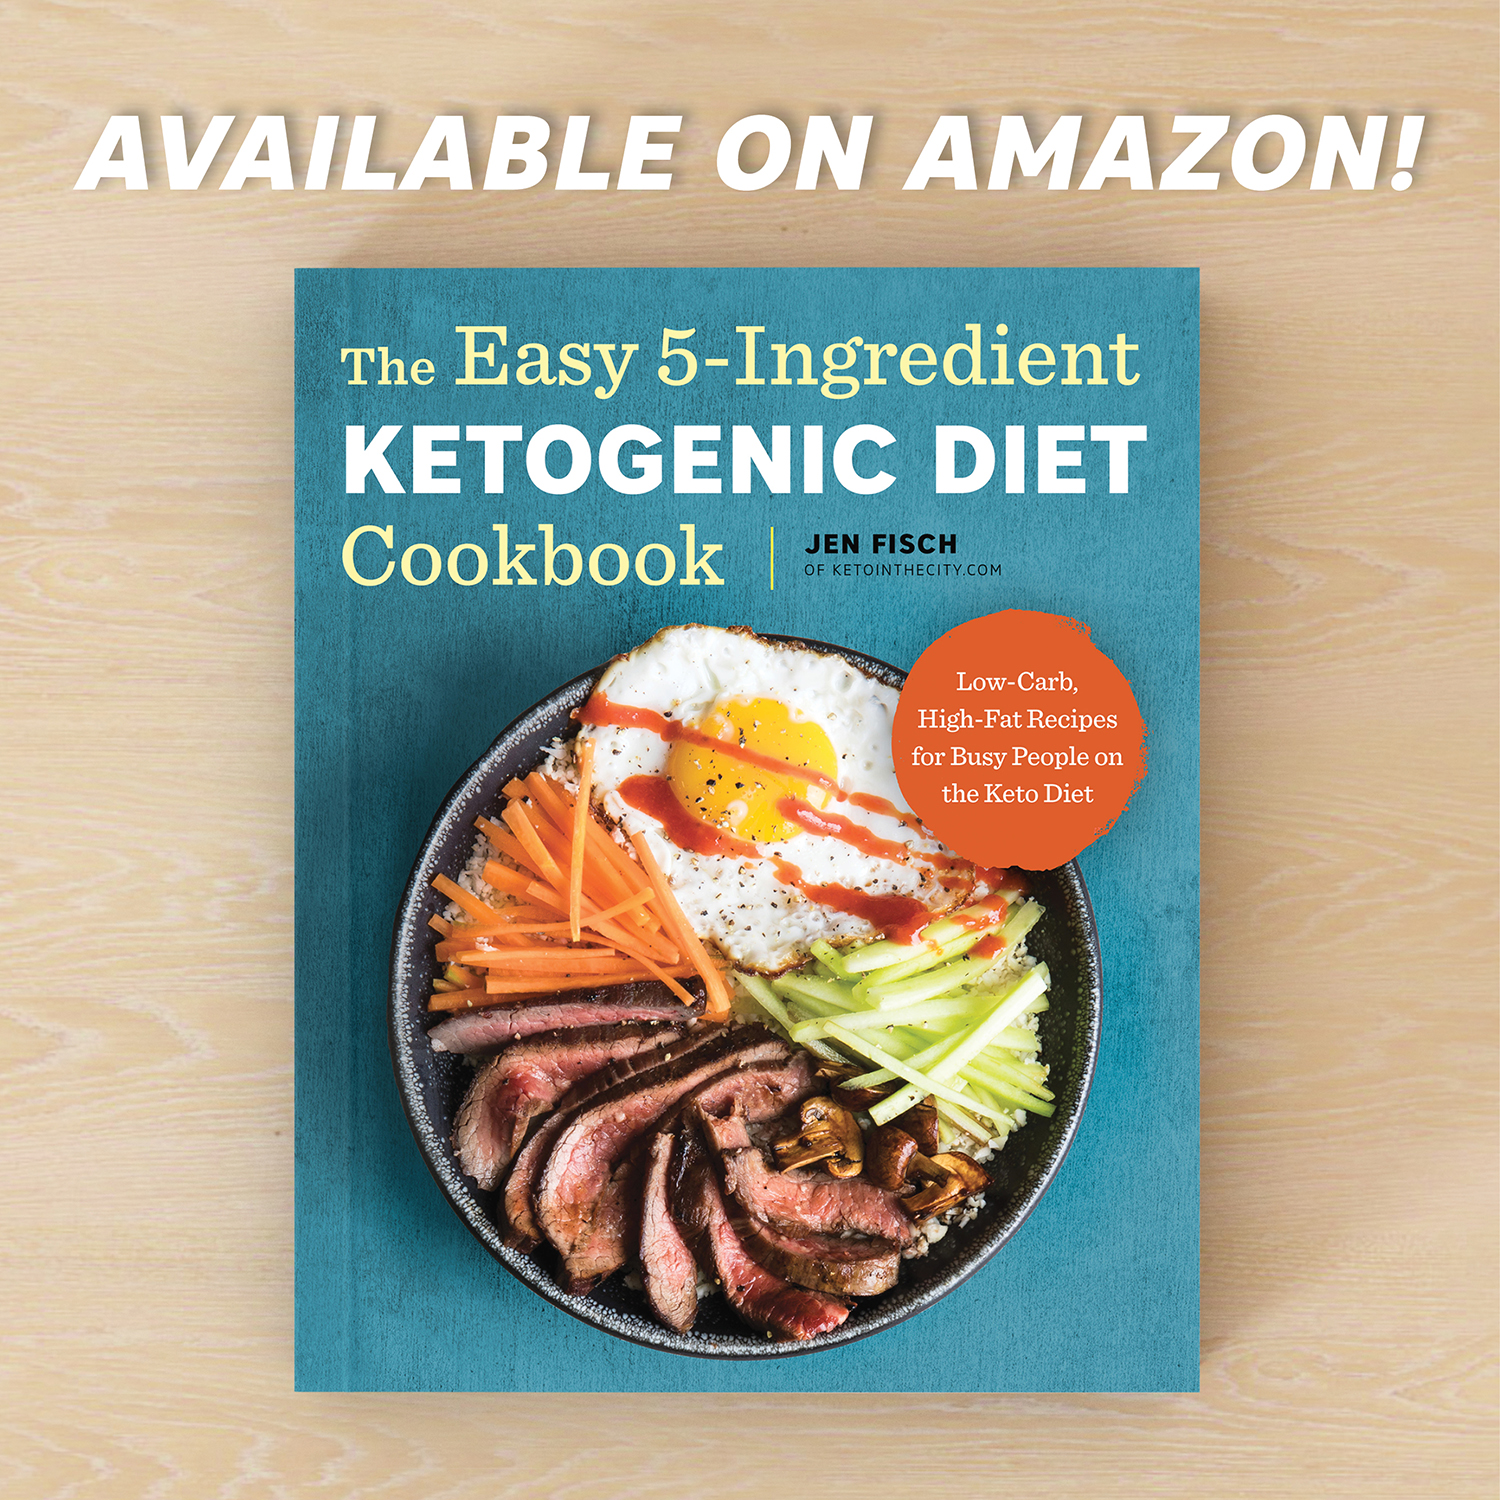 TheEasy5IngredientKetogenicDietCookbook.jpg